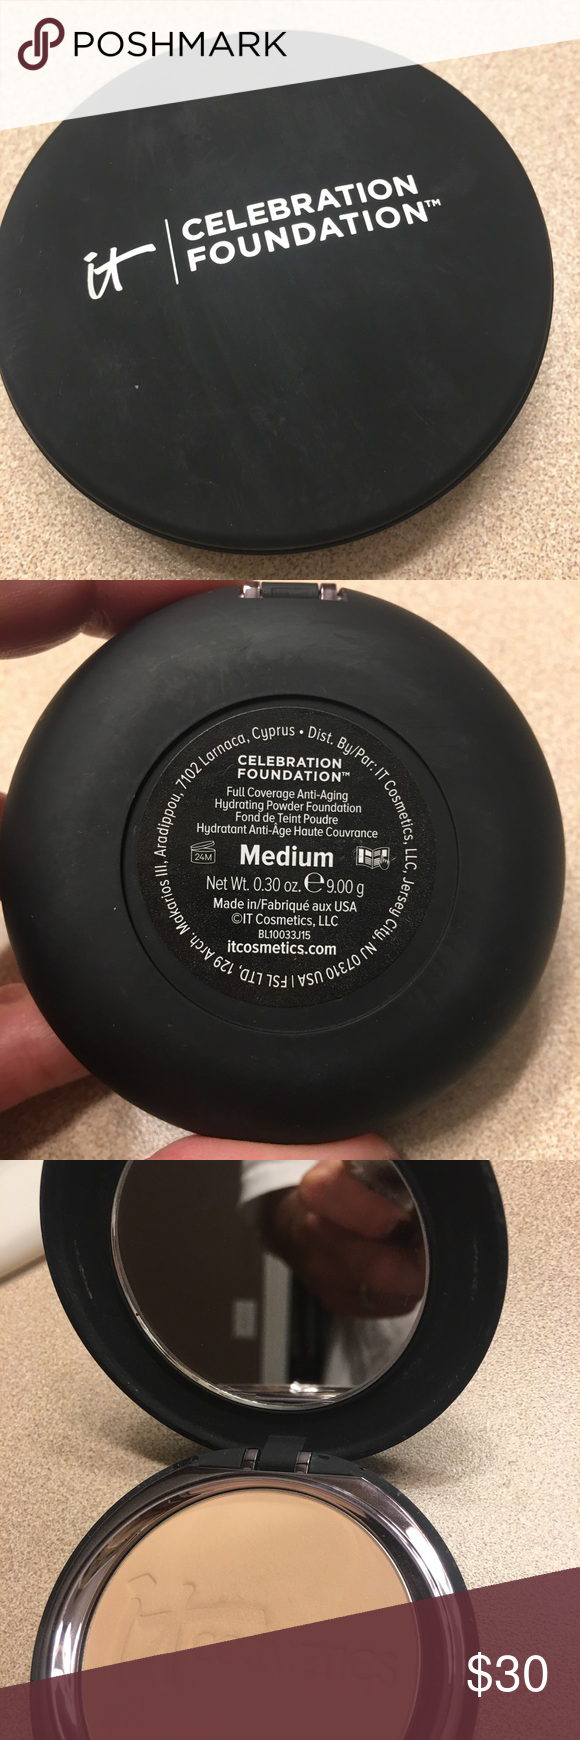 IT Cosmetics Celebration Foundation in MEDIUM (With images